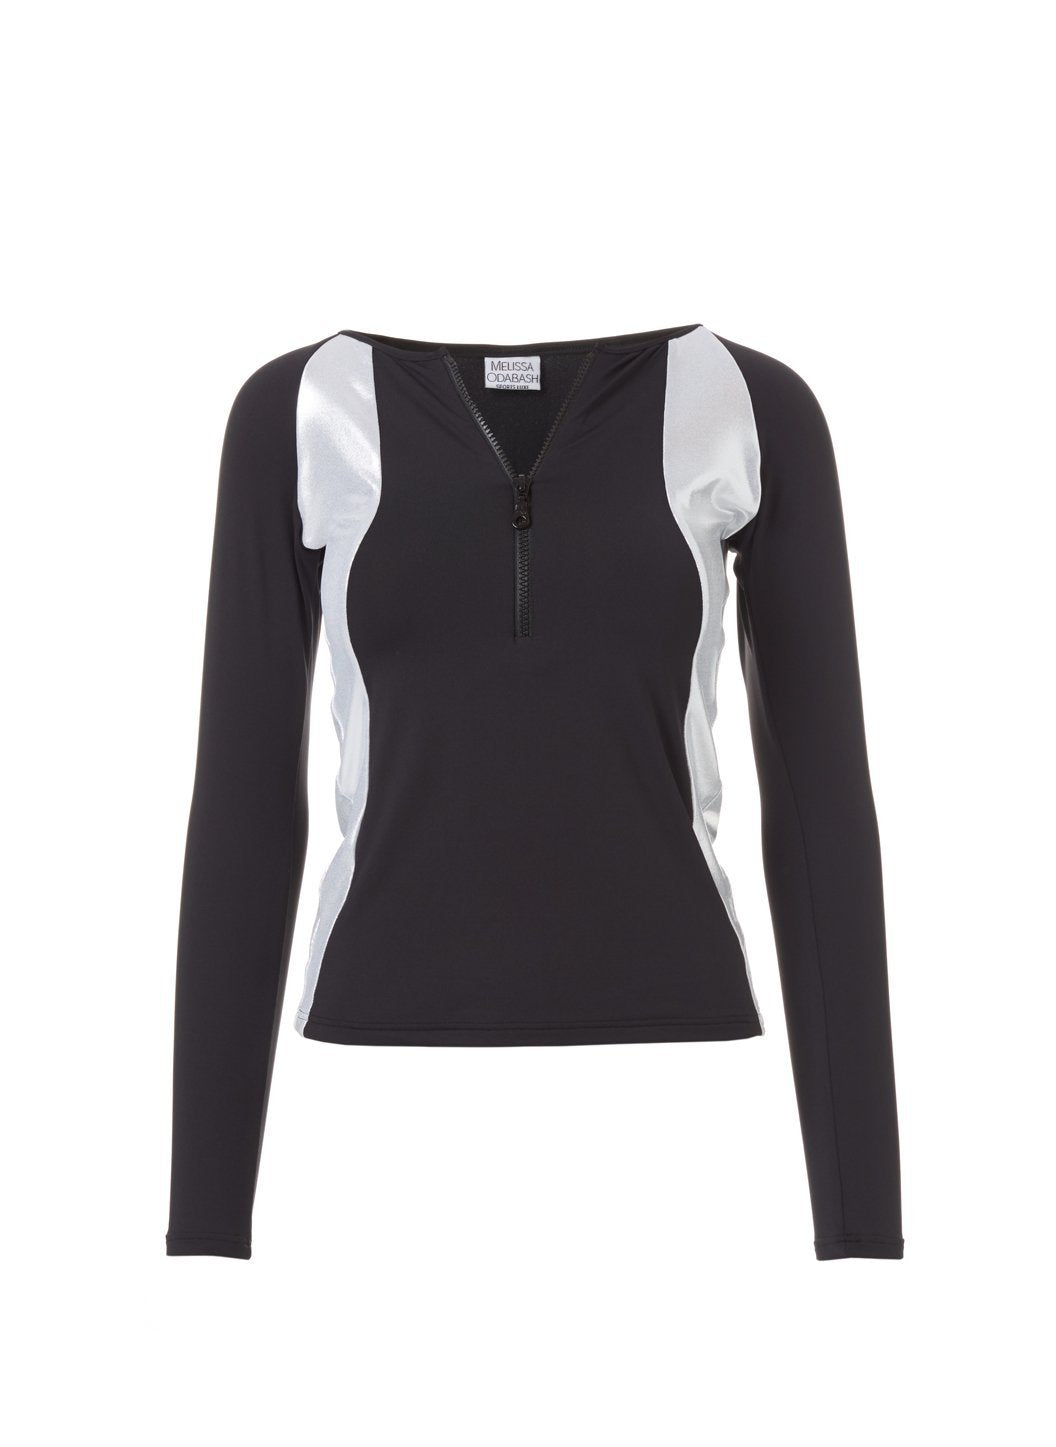 Bondi Black Silver Long Sleeve Rash Vest Top